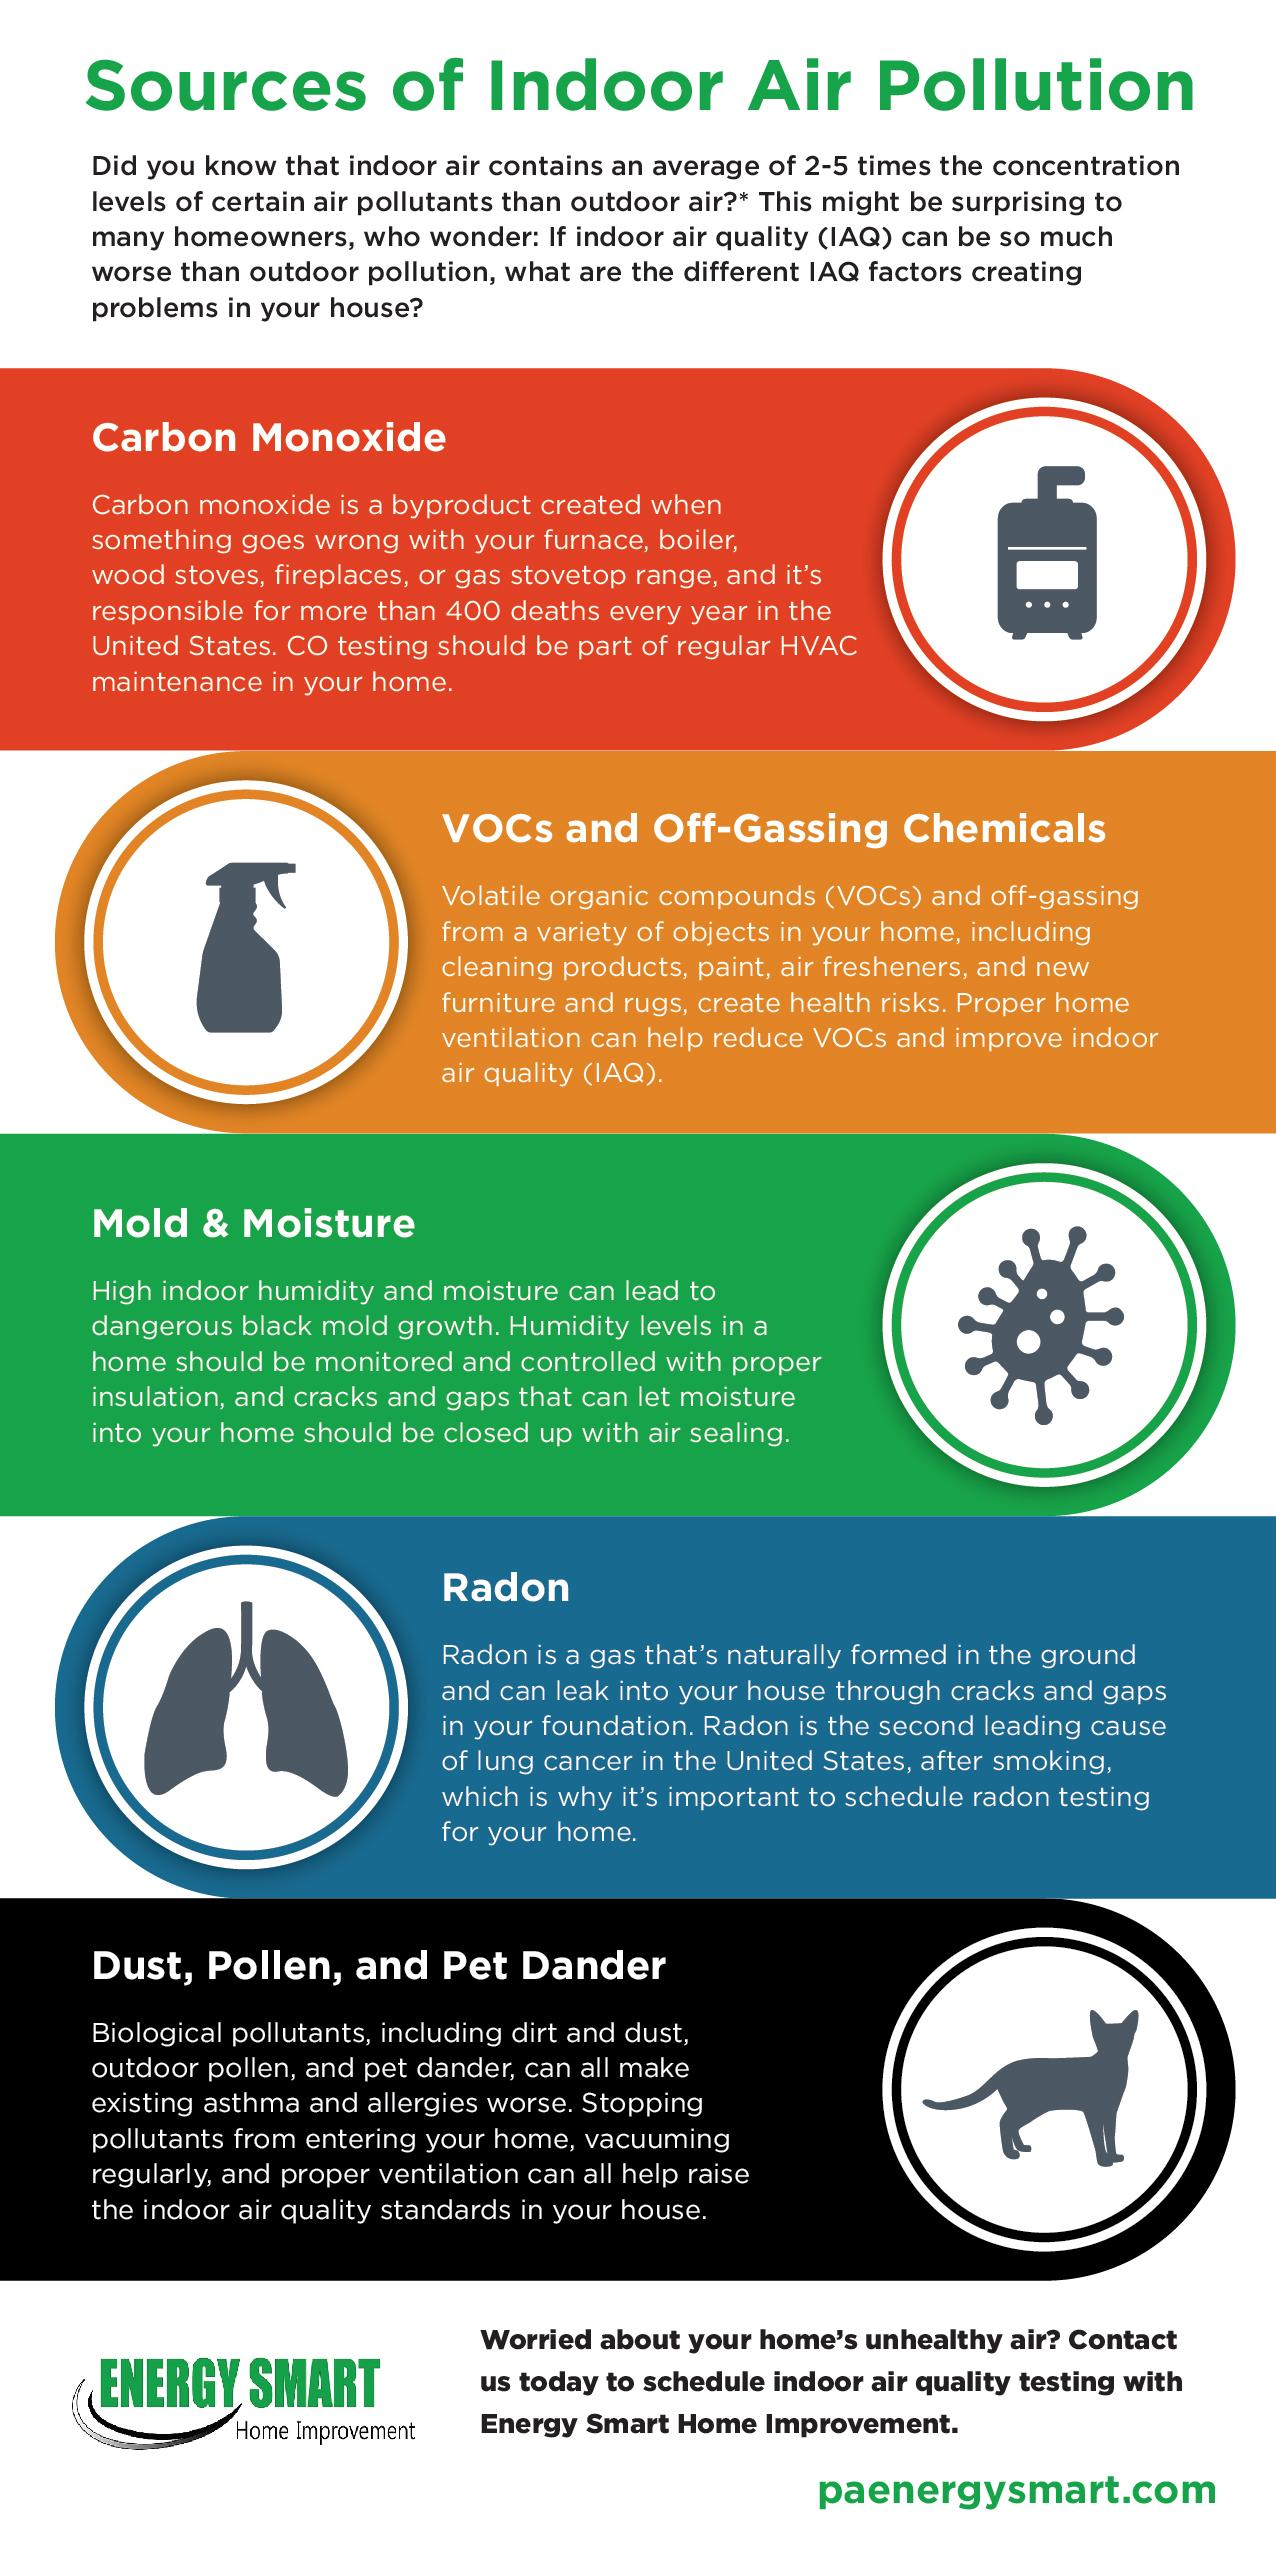 sources of indoor air pollution energy smart home improvement infographic